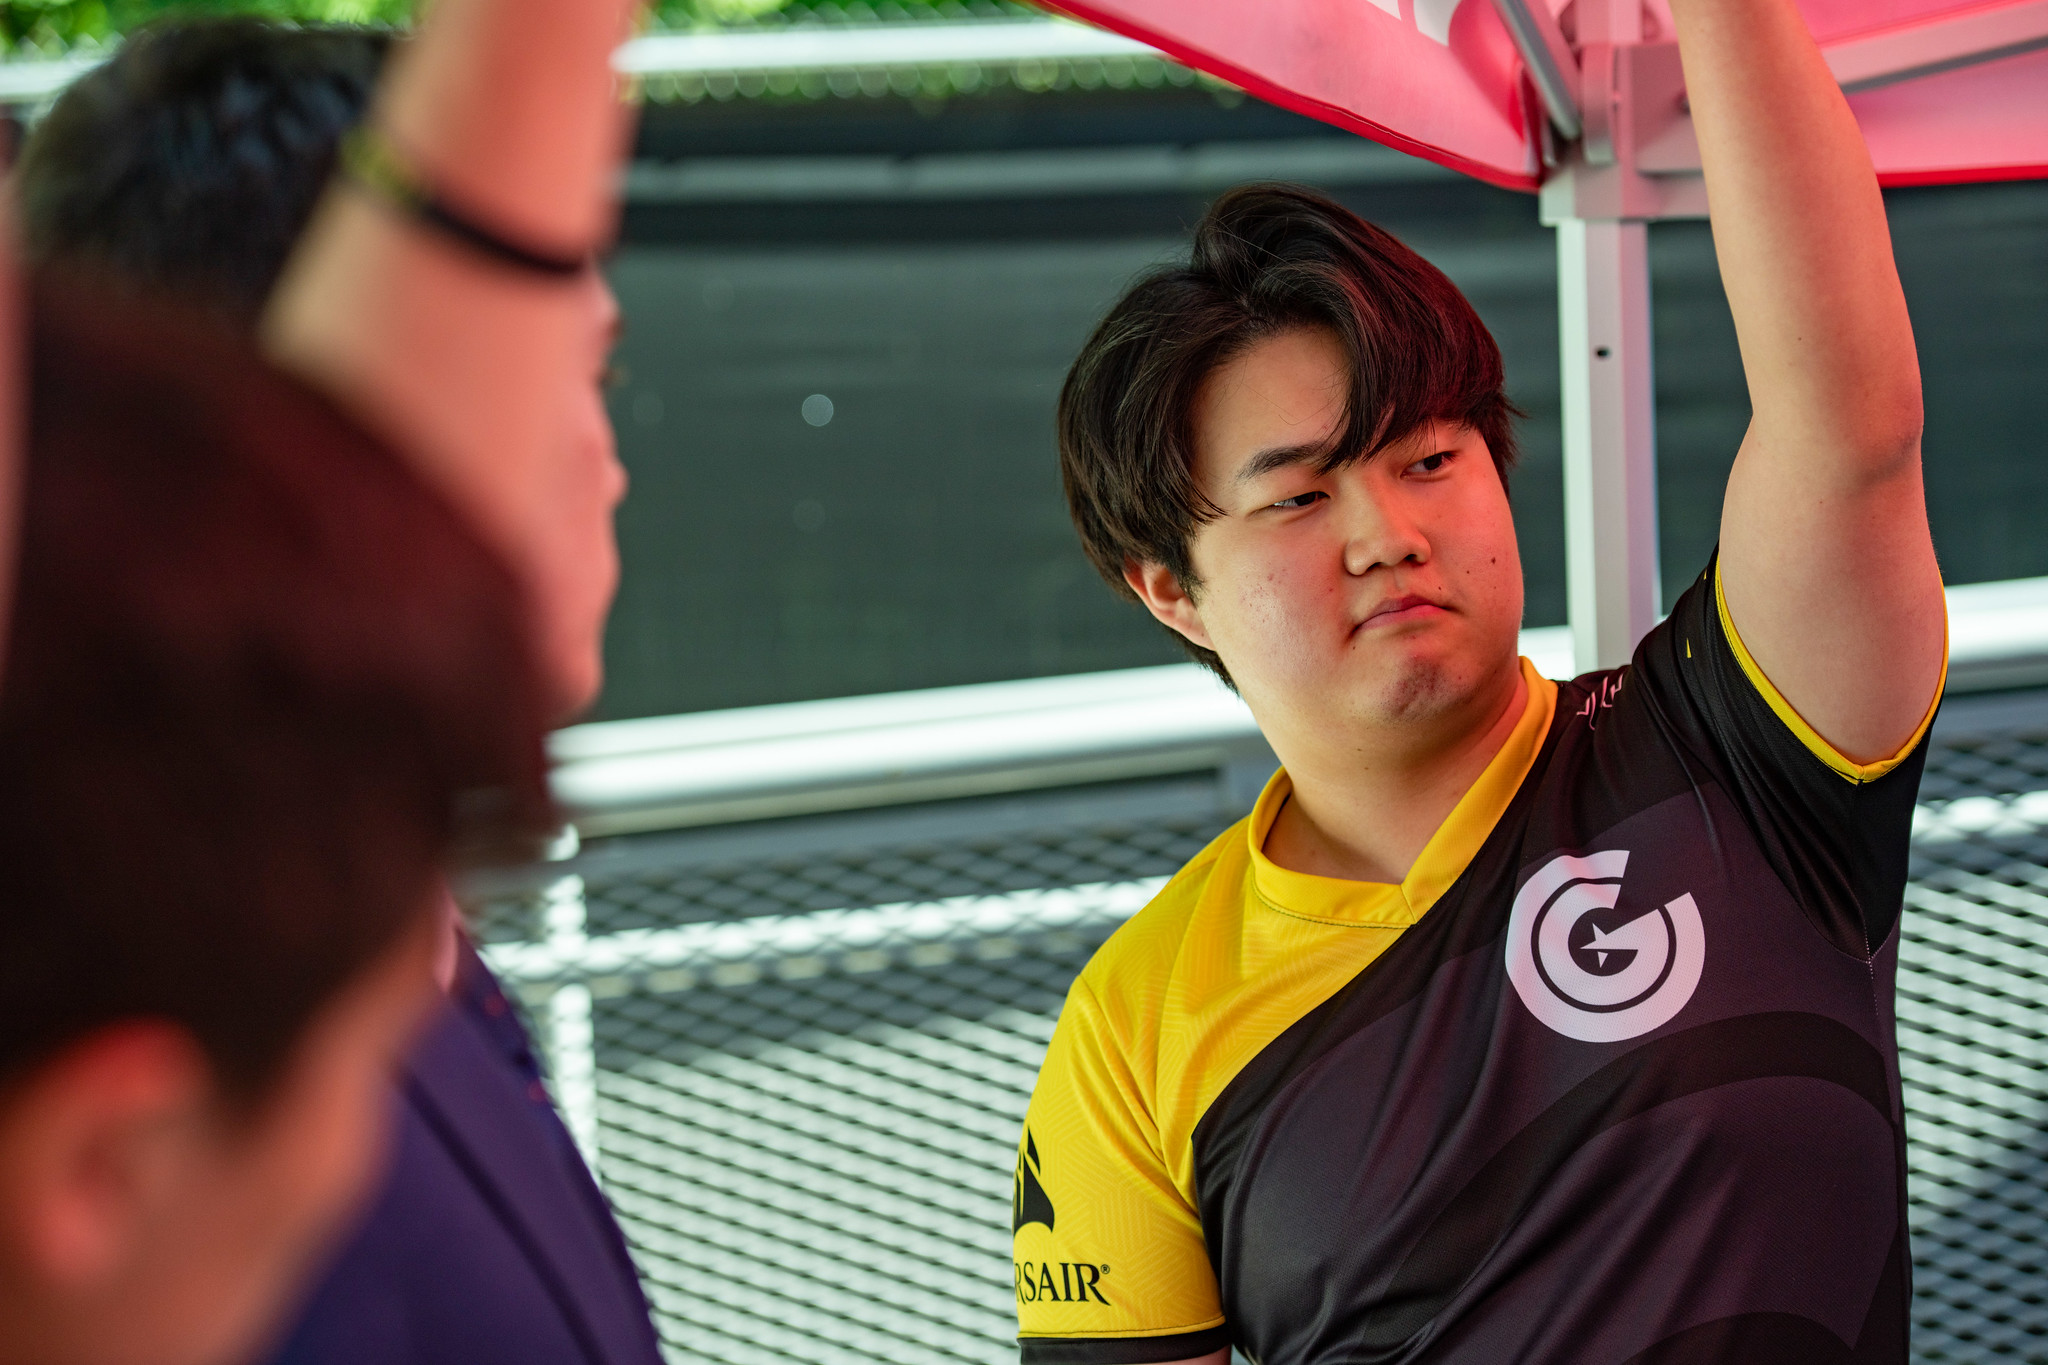 Huni May Have Been Released By Dignitas In League's Championship Series Ahead Of Summer Split